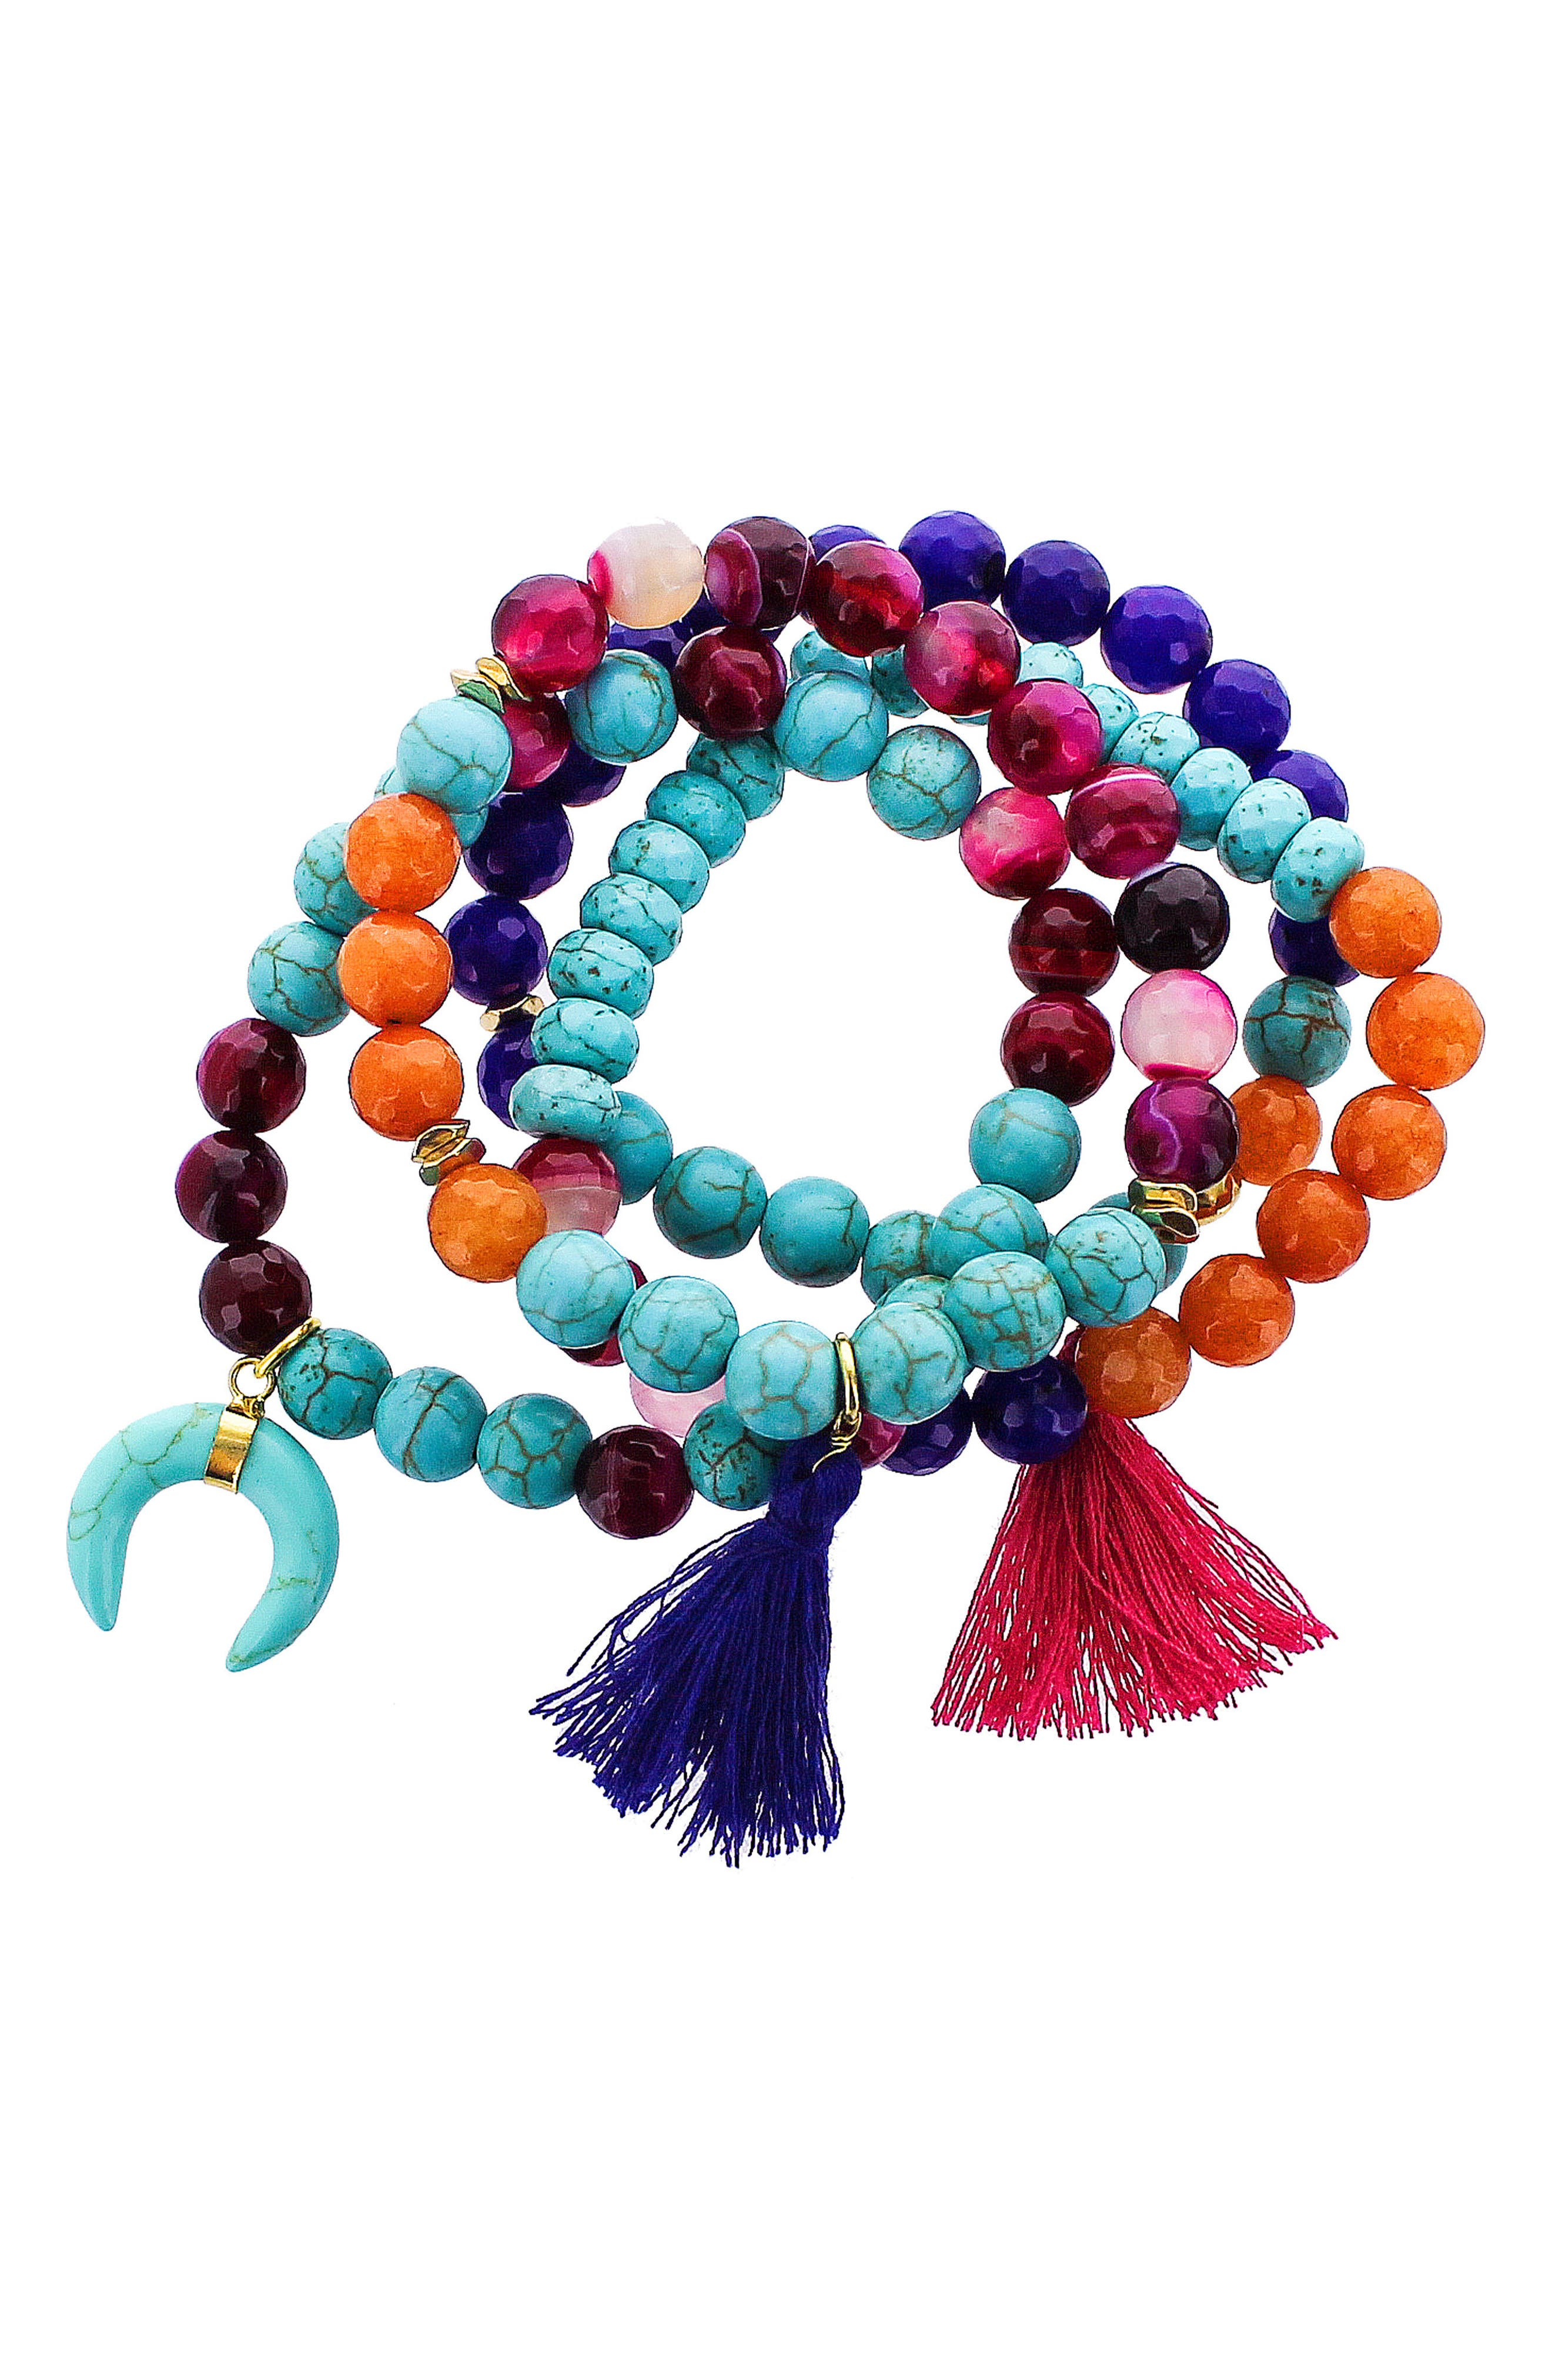 Set of 4 Beaded Stretch Bracelets,                         Main,                         color, Turquoise/ Multi